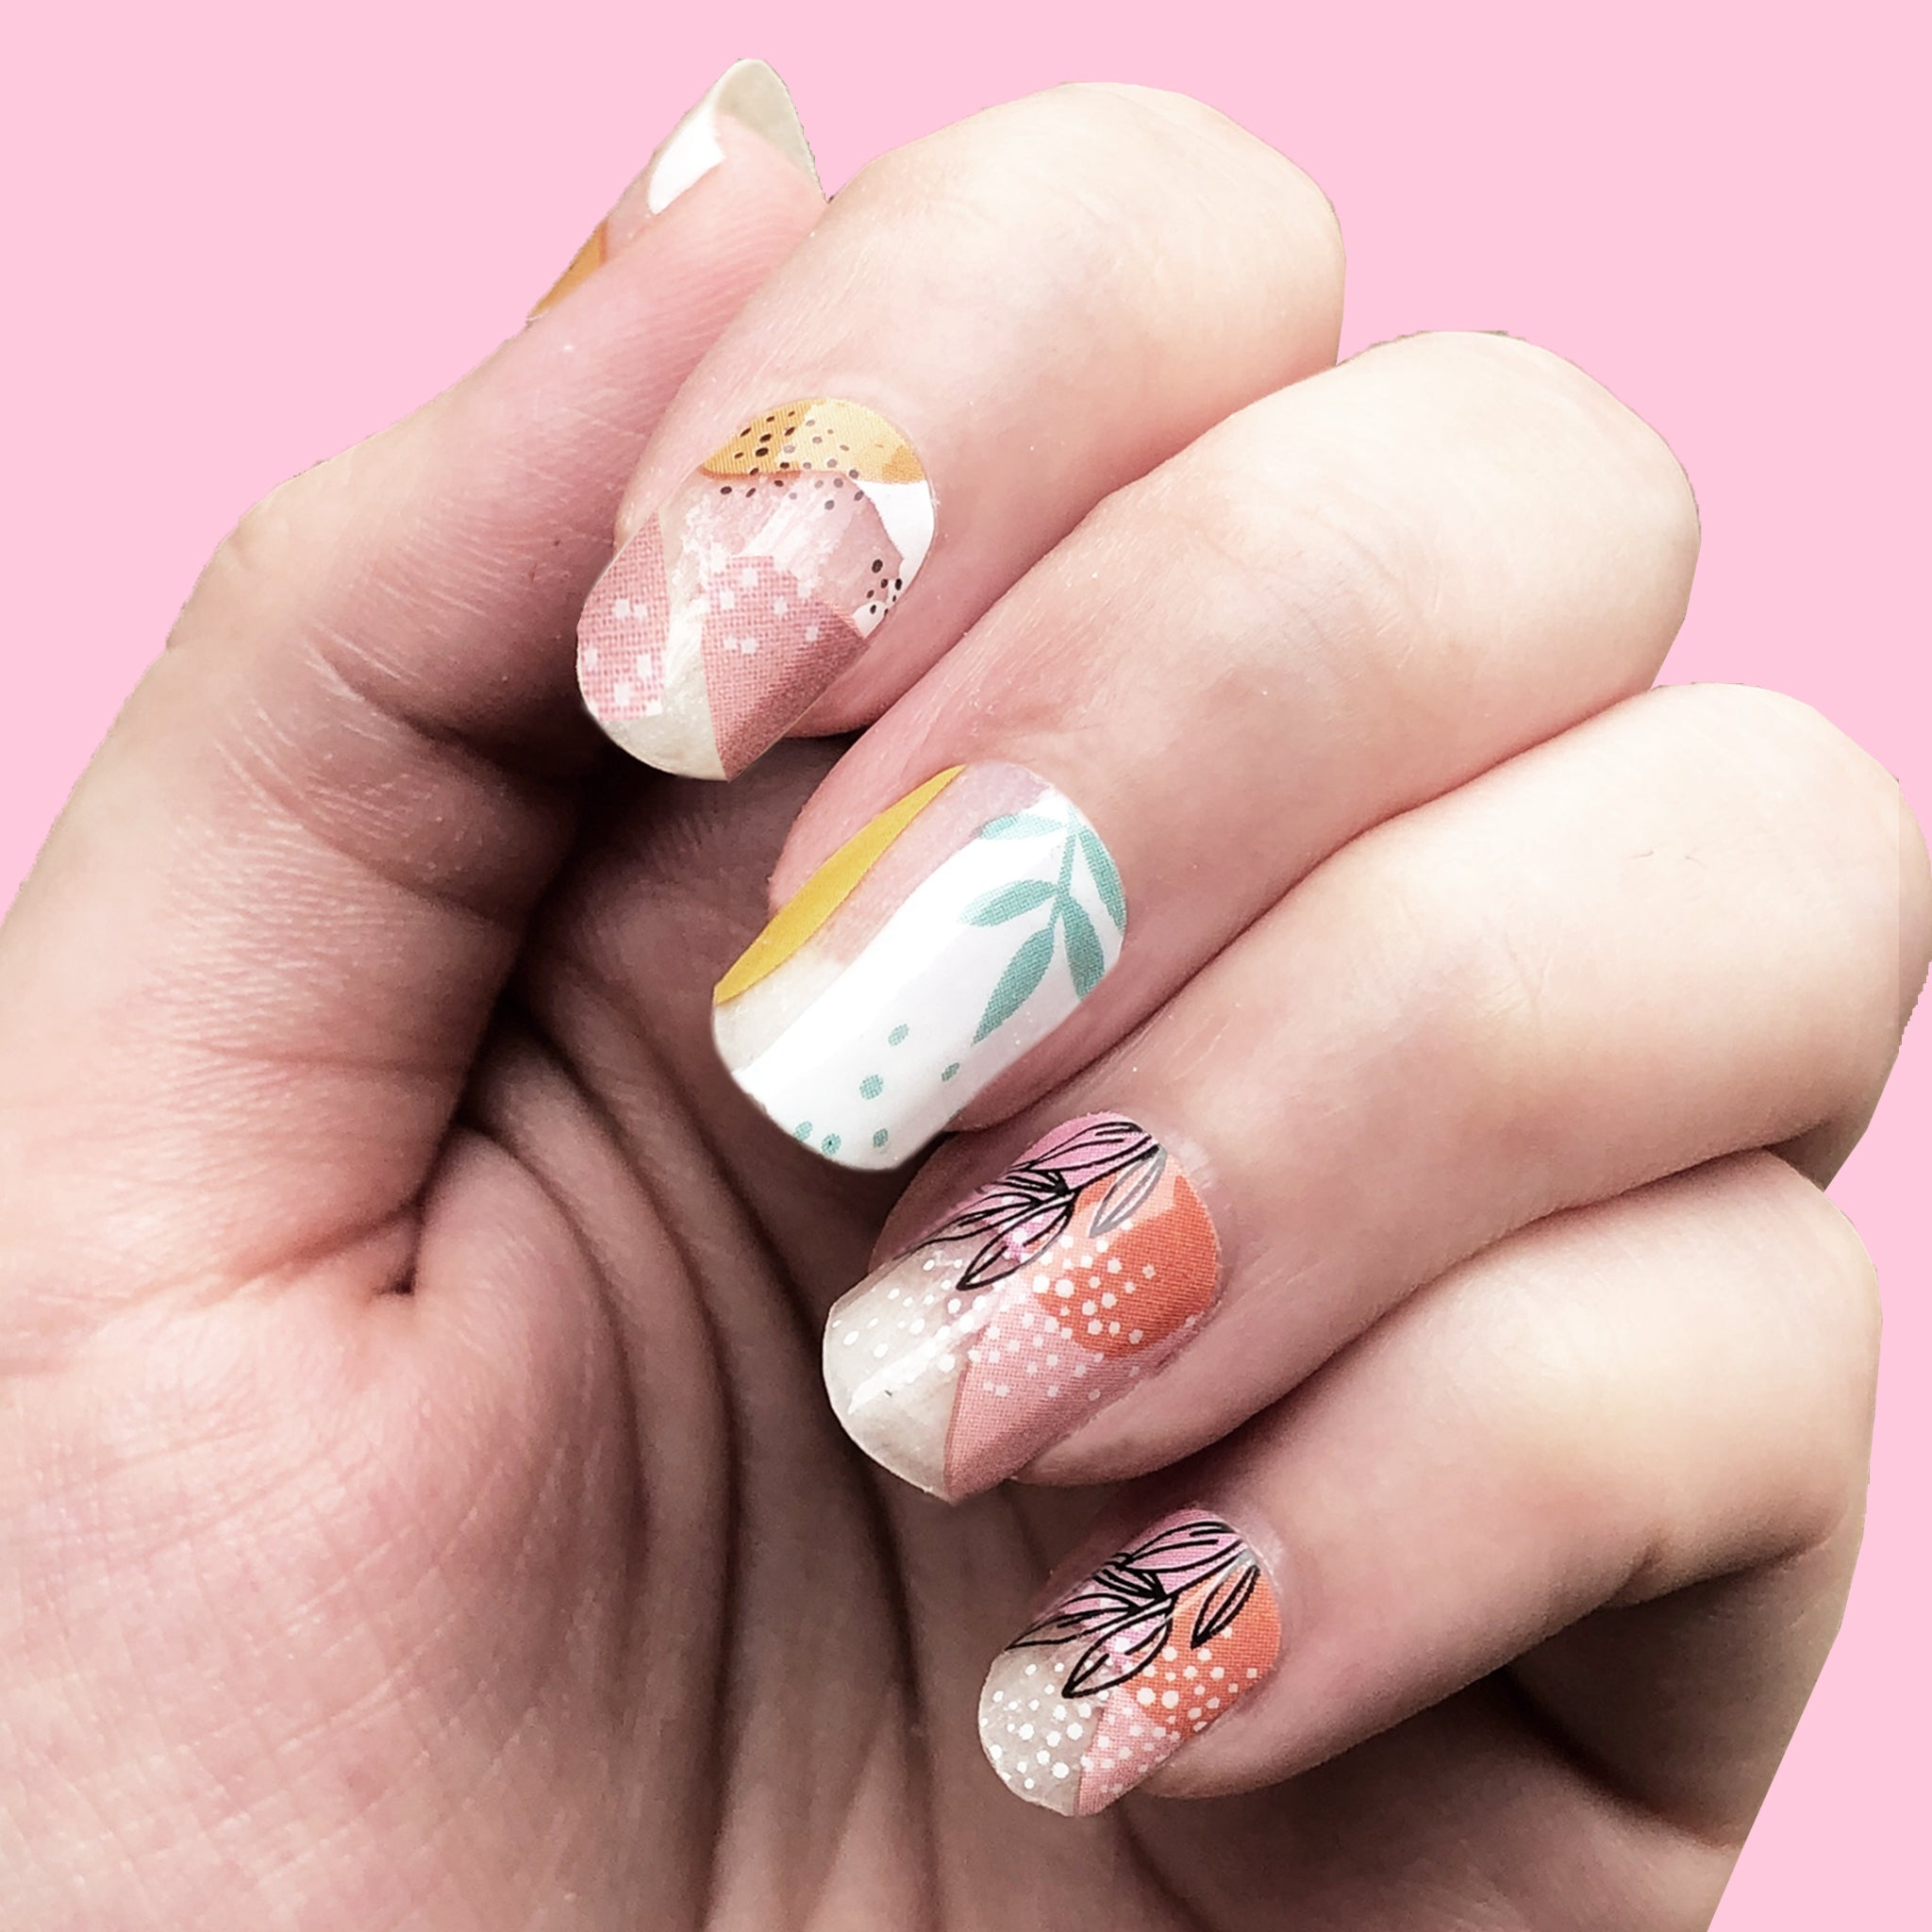 Summer Love - WrapIt Nails